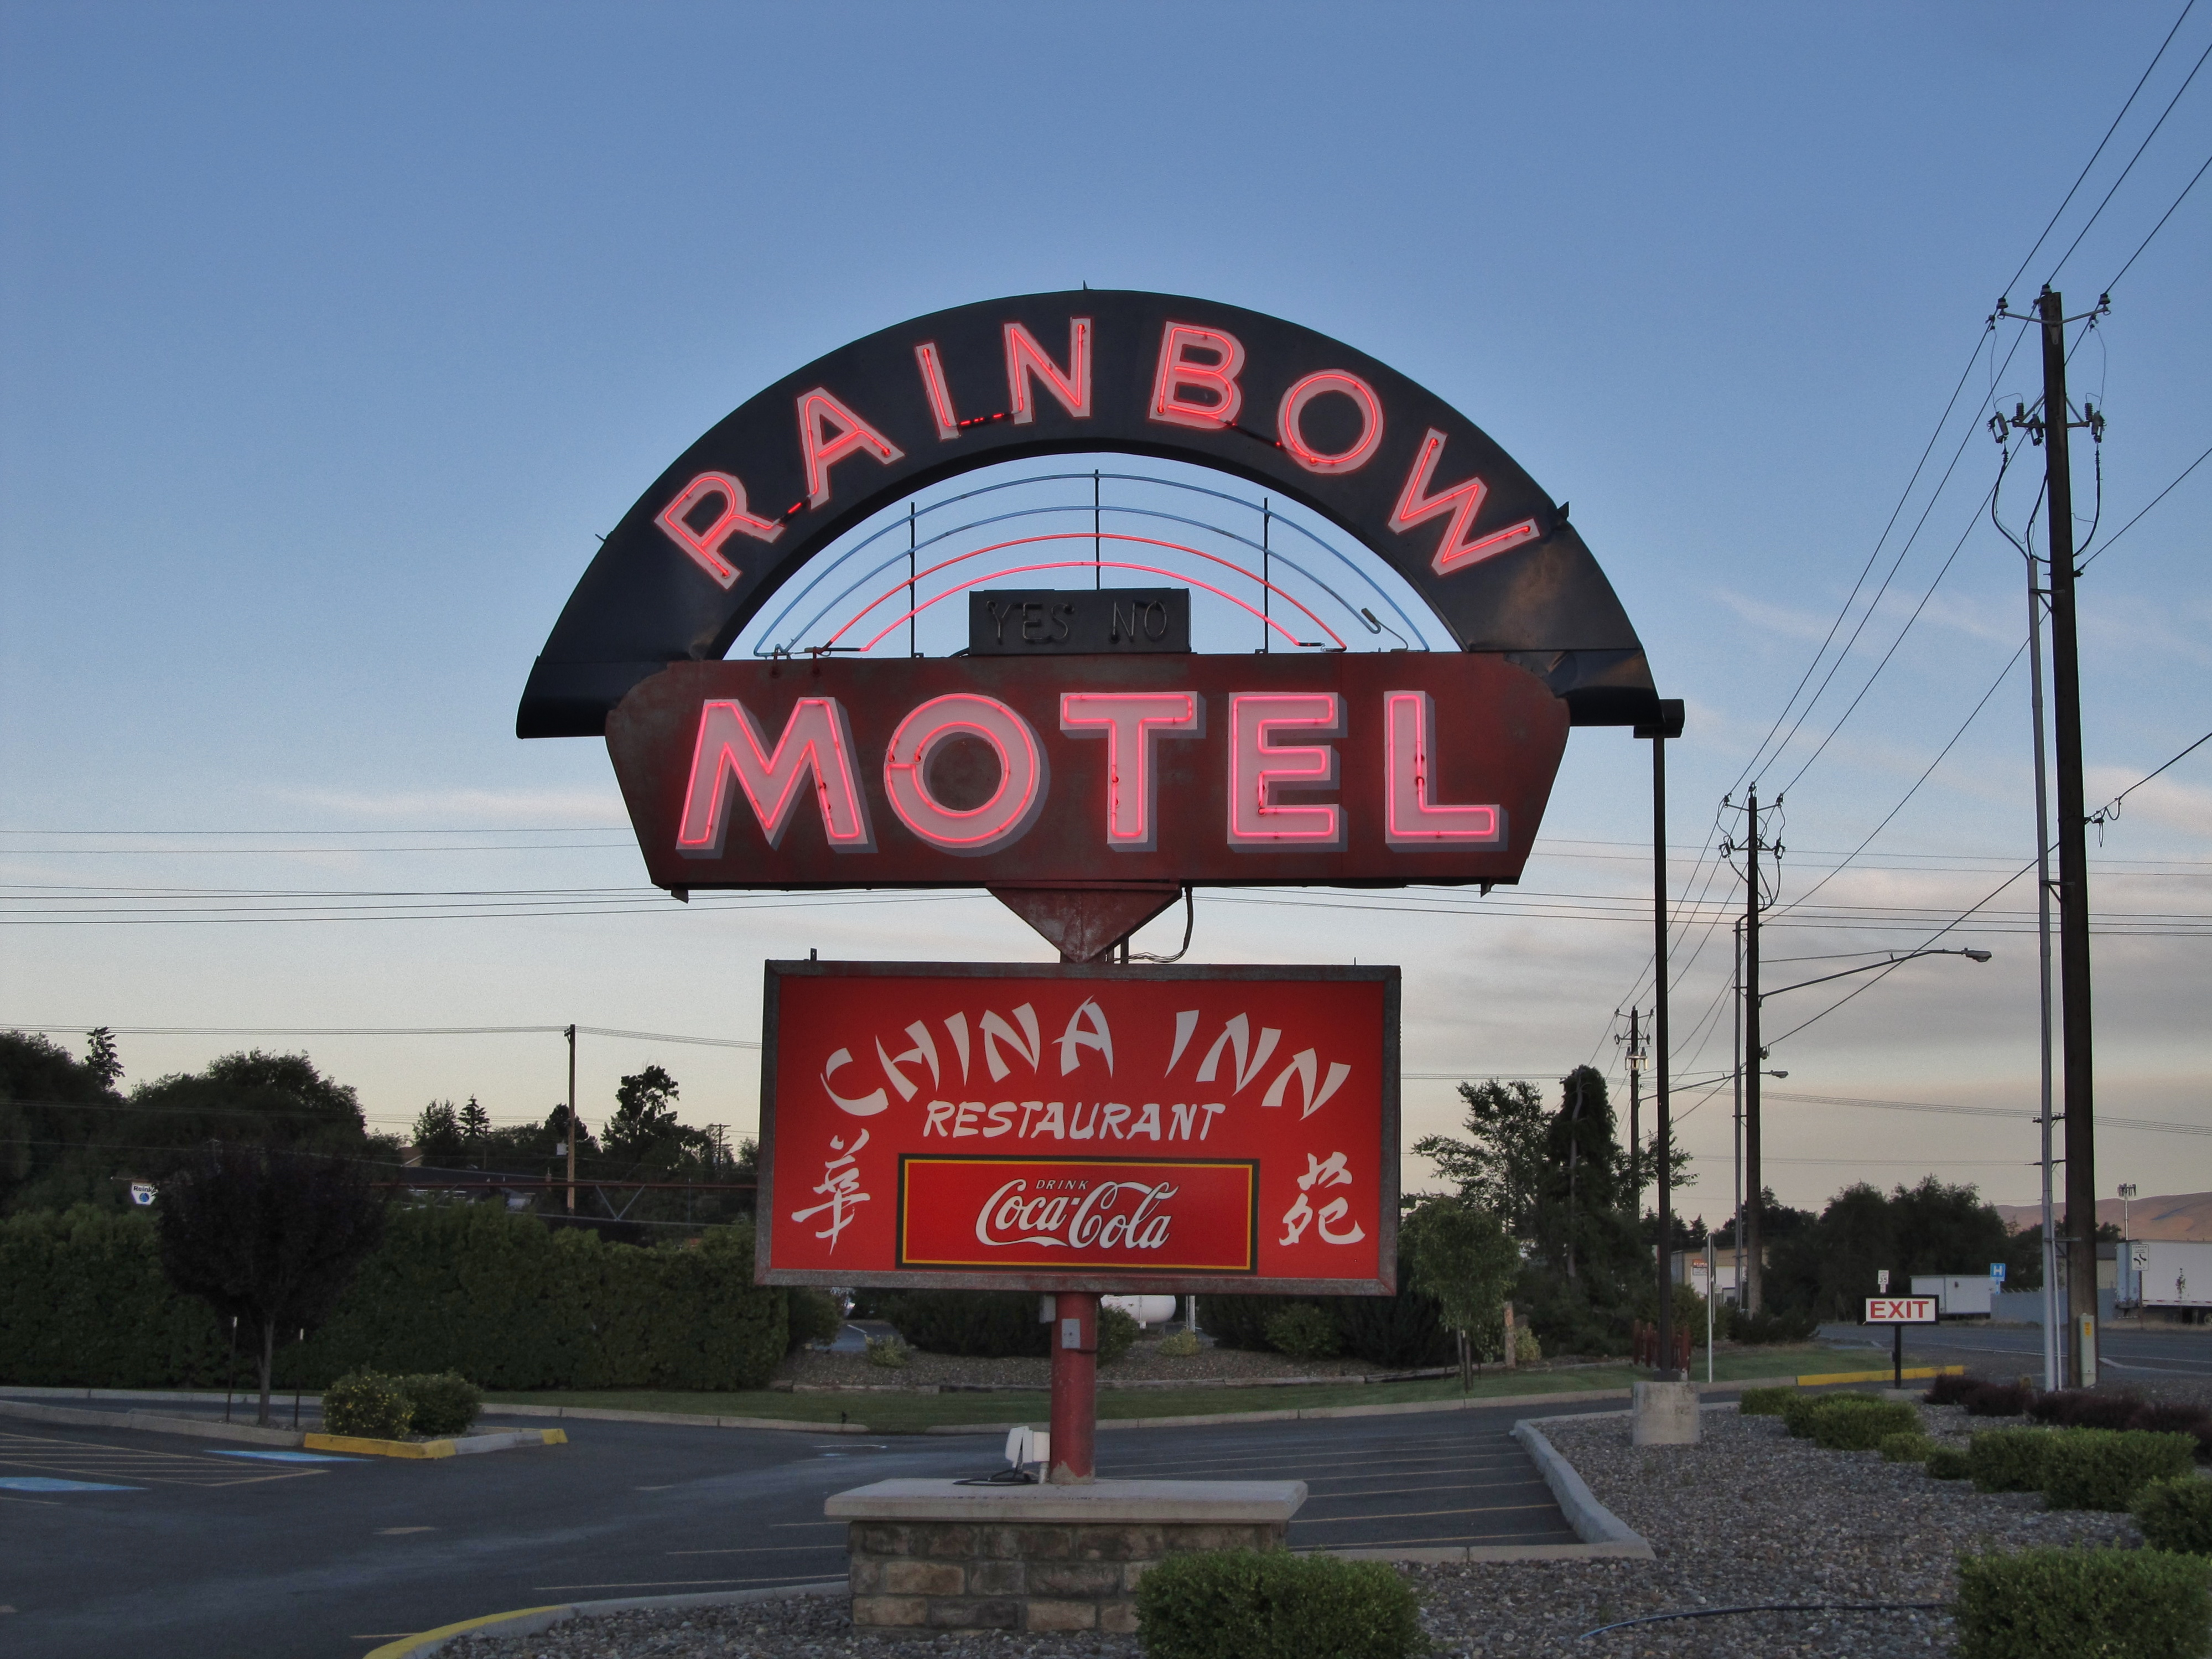 Rainbow Motel - 1025 West University Way, Ellensburg, Washington U.S.A. - June 16, 2016